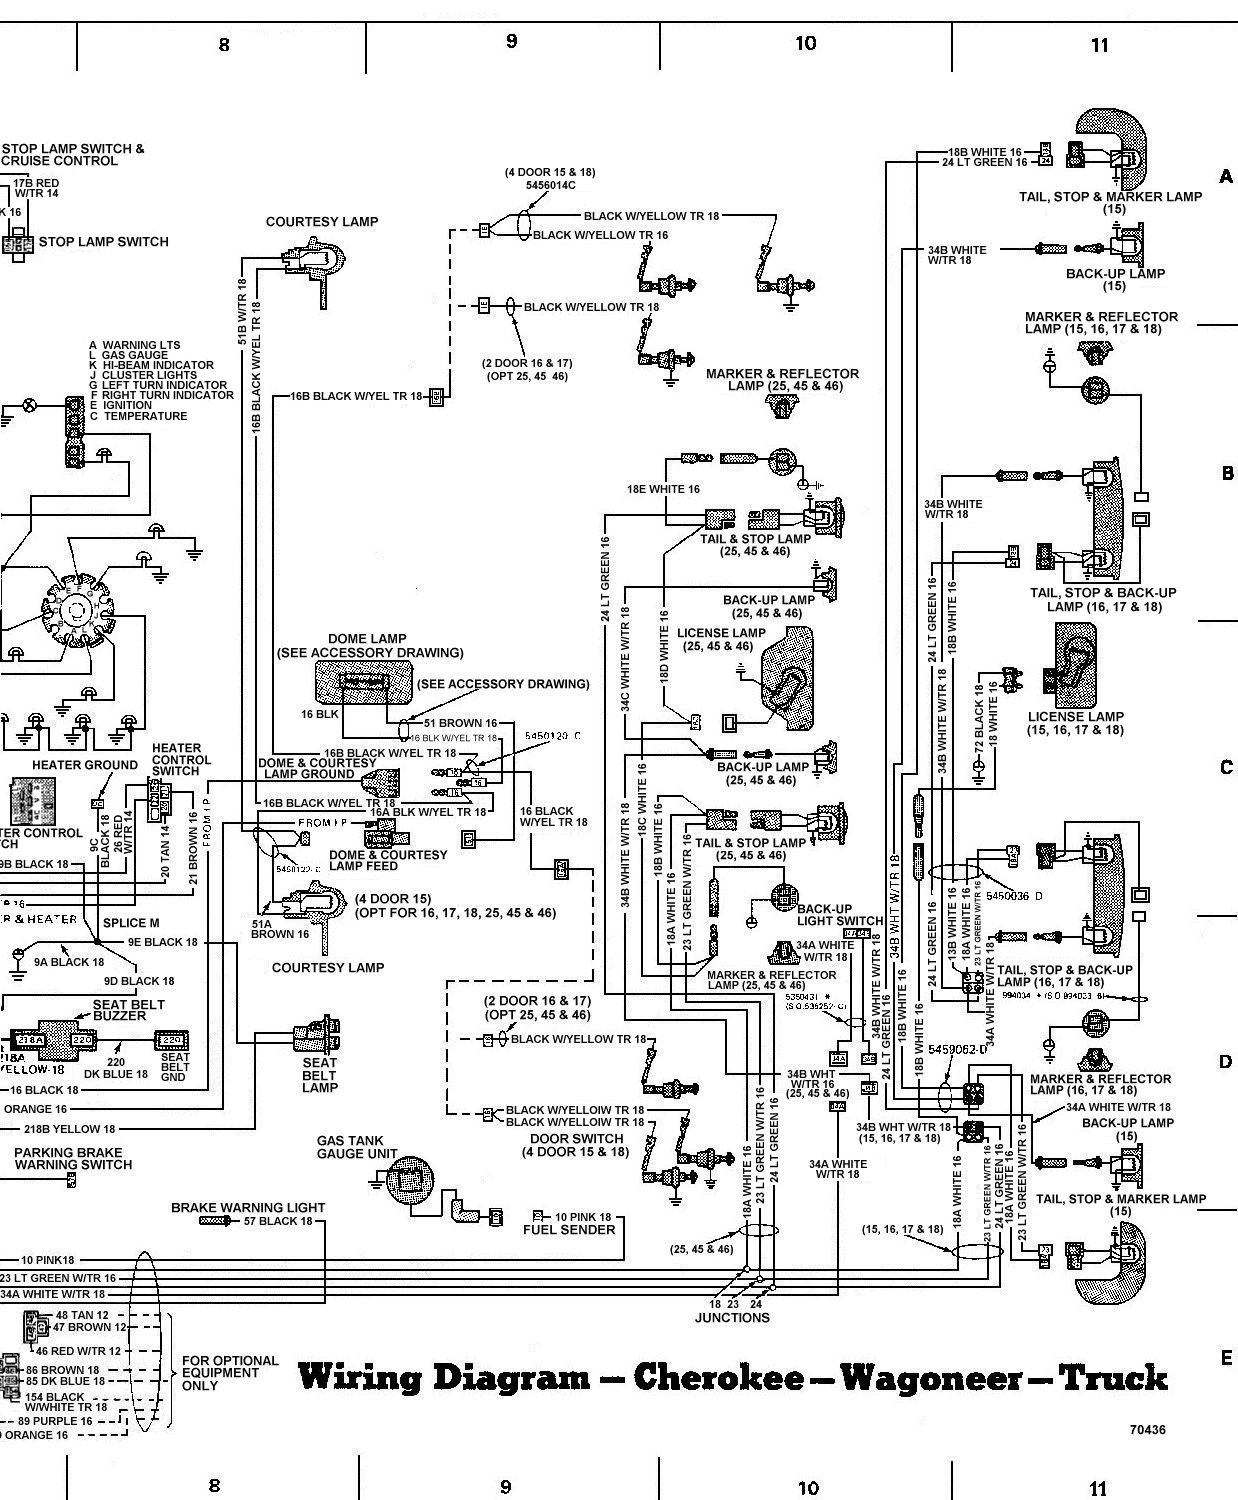 hight resolution of amc 360 wiring diagram wiring diagram schematics jeep grand cherokee engine diagram amc 360 wiring diagram